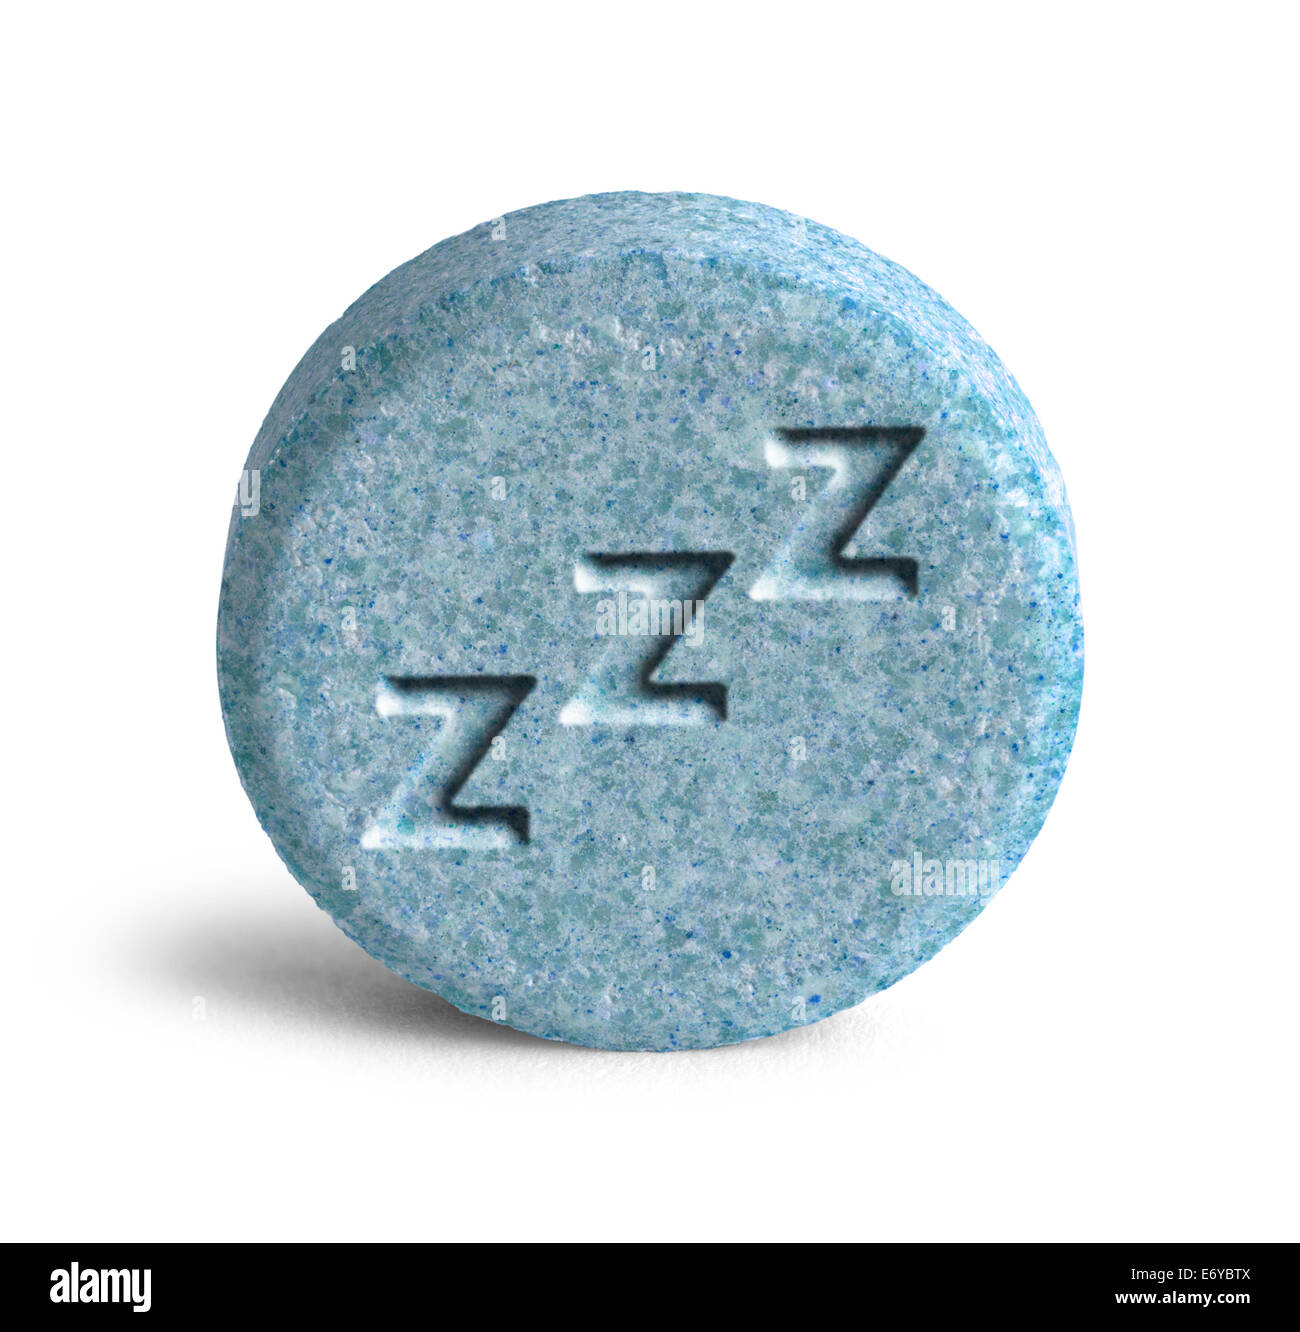 Sleeping Pill Stock Photos & Sleeping Pill Stock Images - Alamy